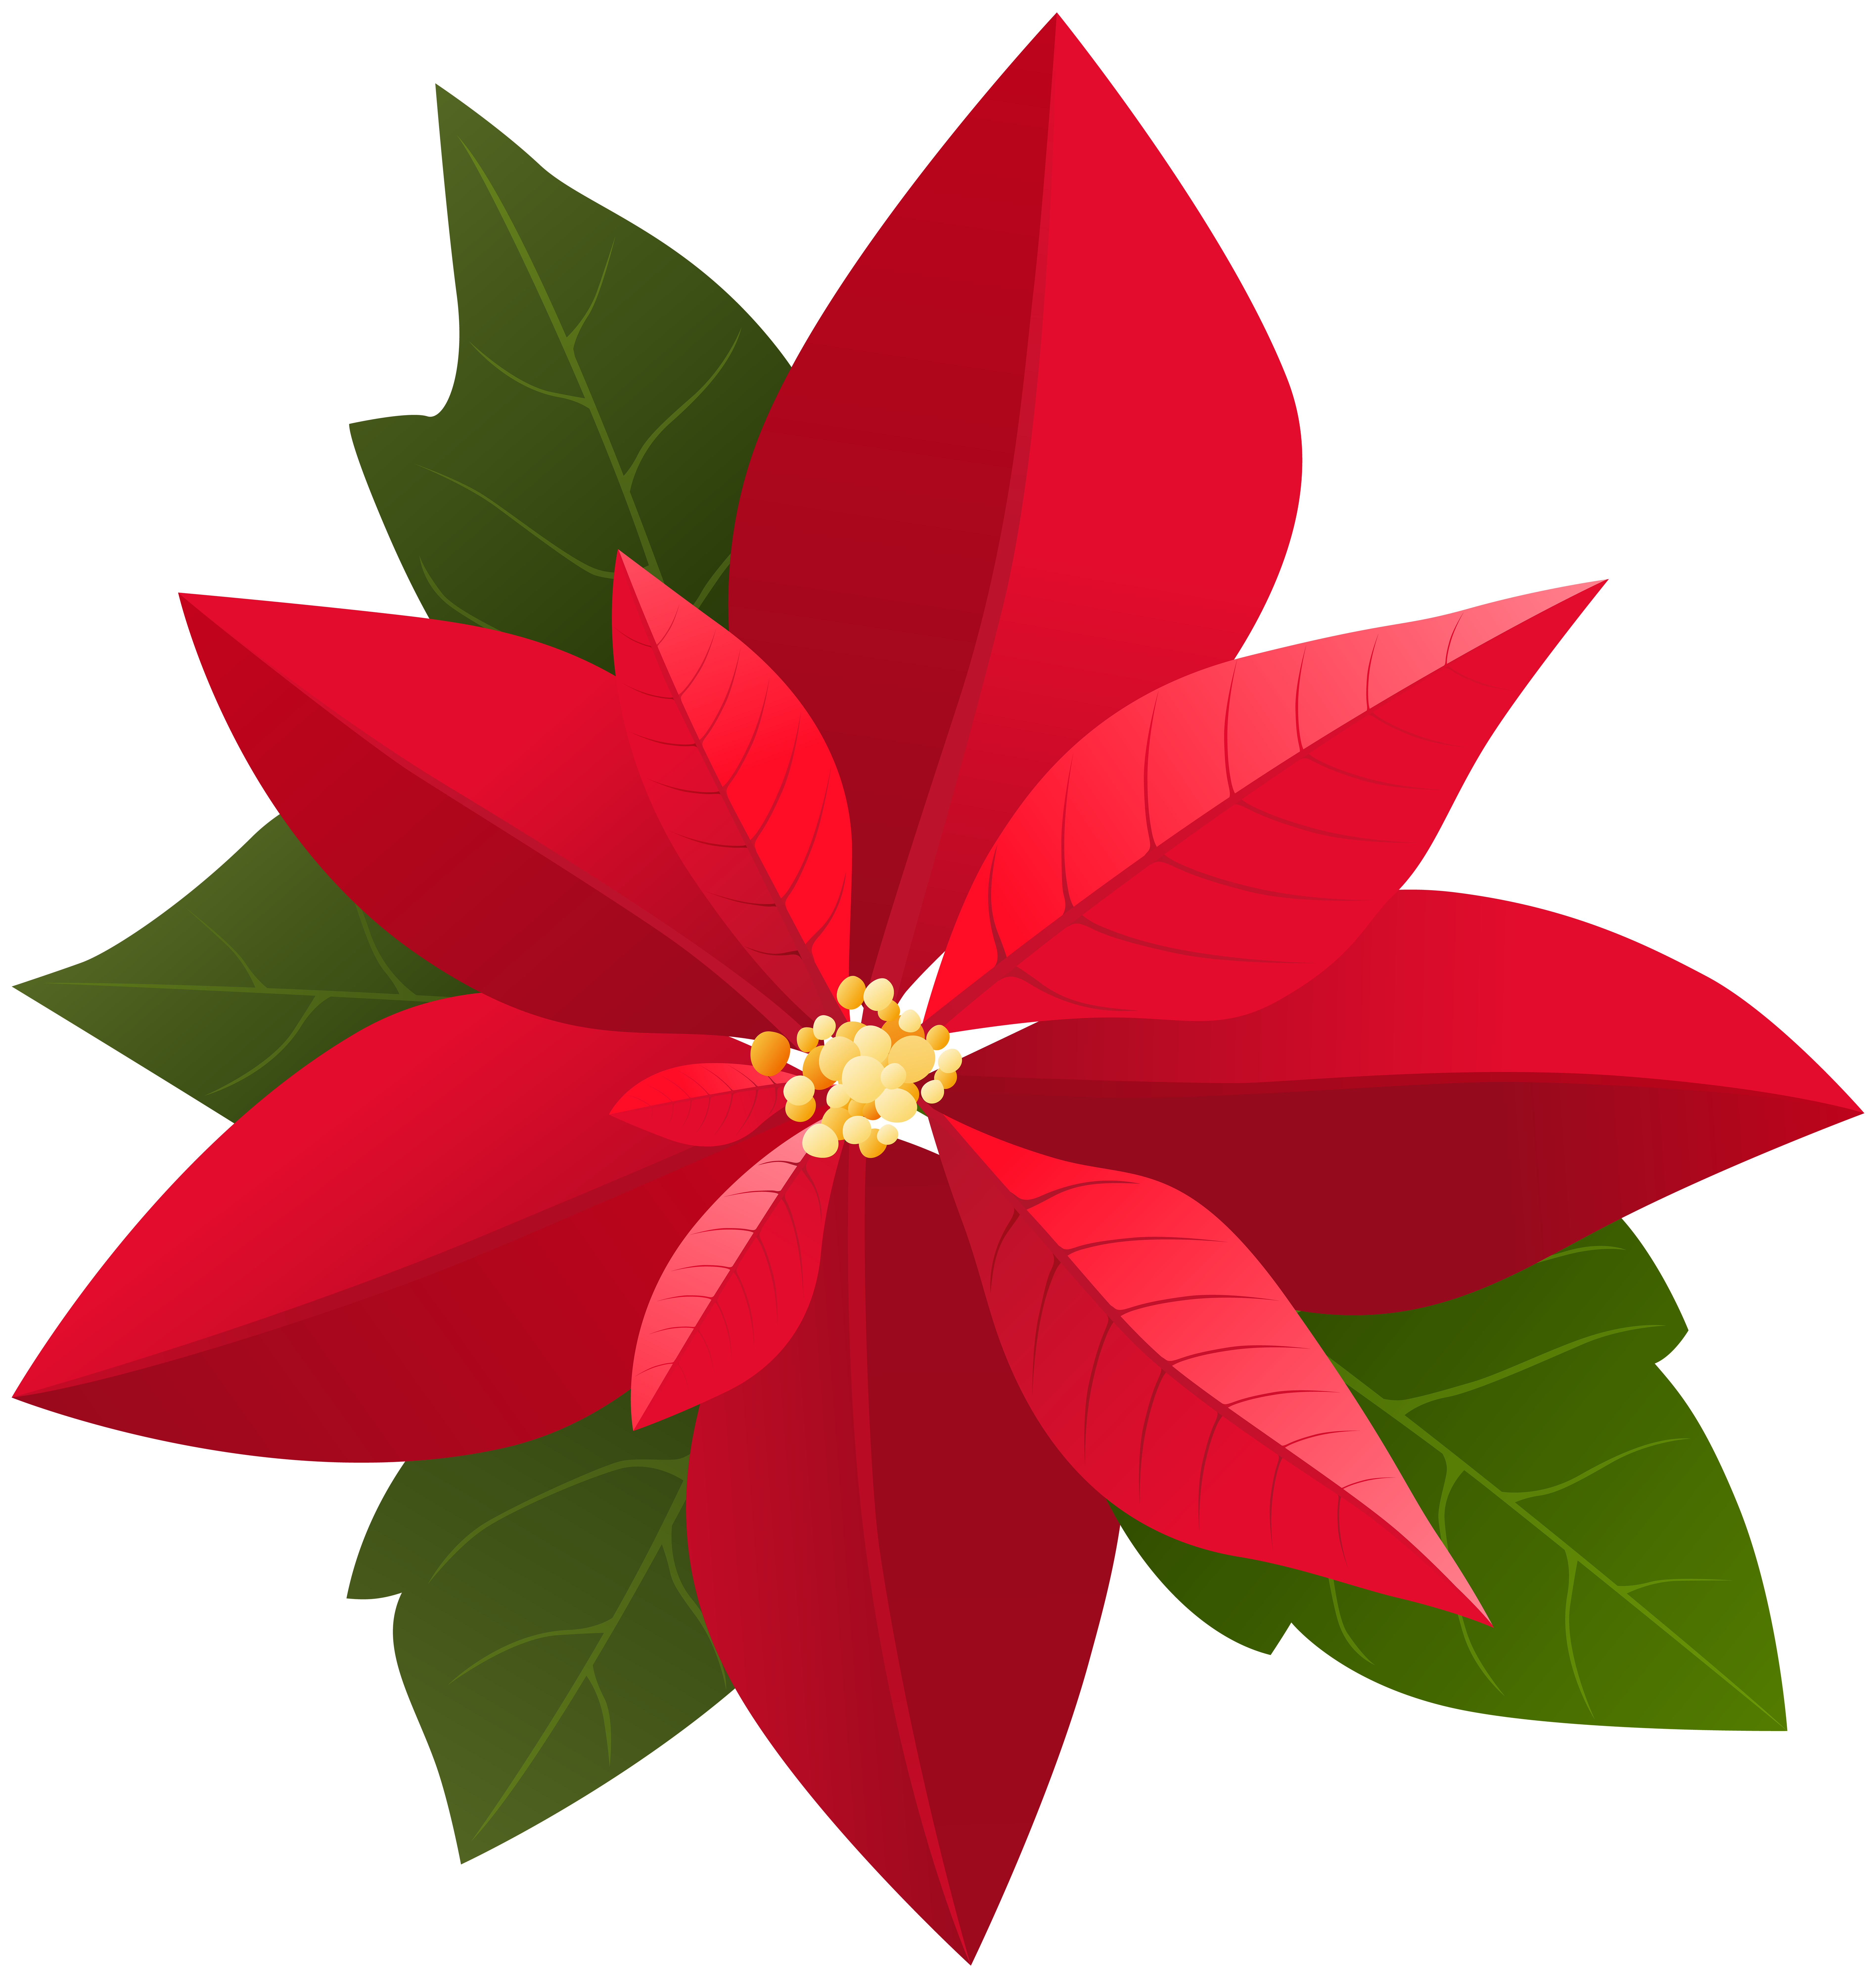 Clipart christmas leaves. Poinsettia png clip art